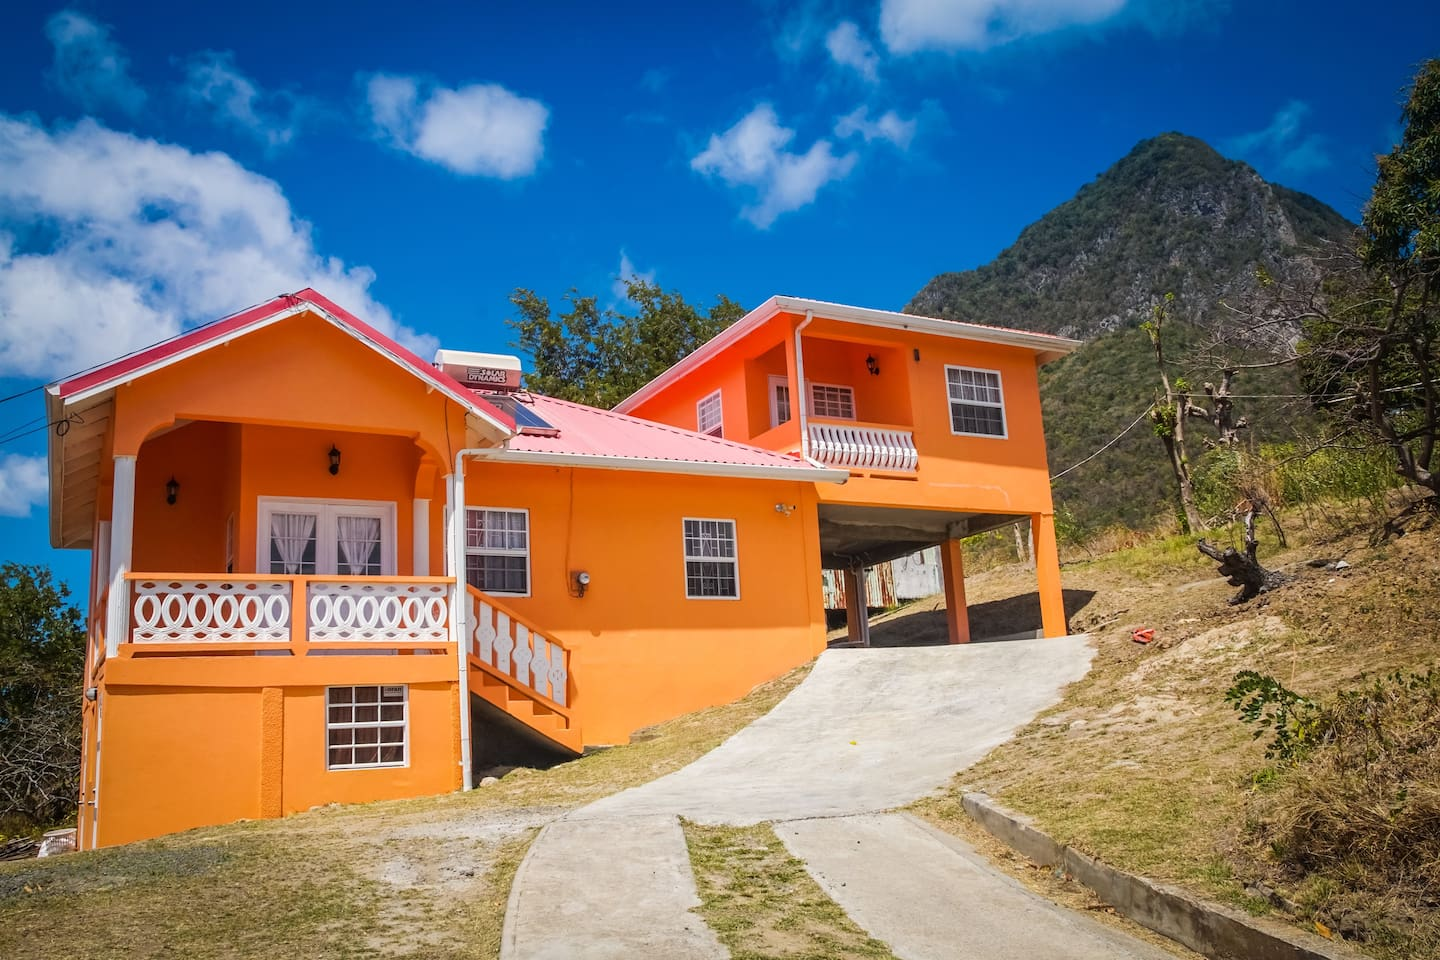 Beautiful inside and out. Vinaya's apartments from the outside. Studio apartment above and 2 bed apartment below. With the majestic Gros Piton in the background.